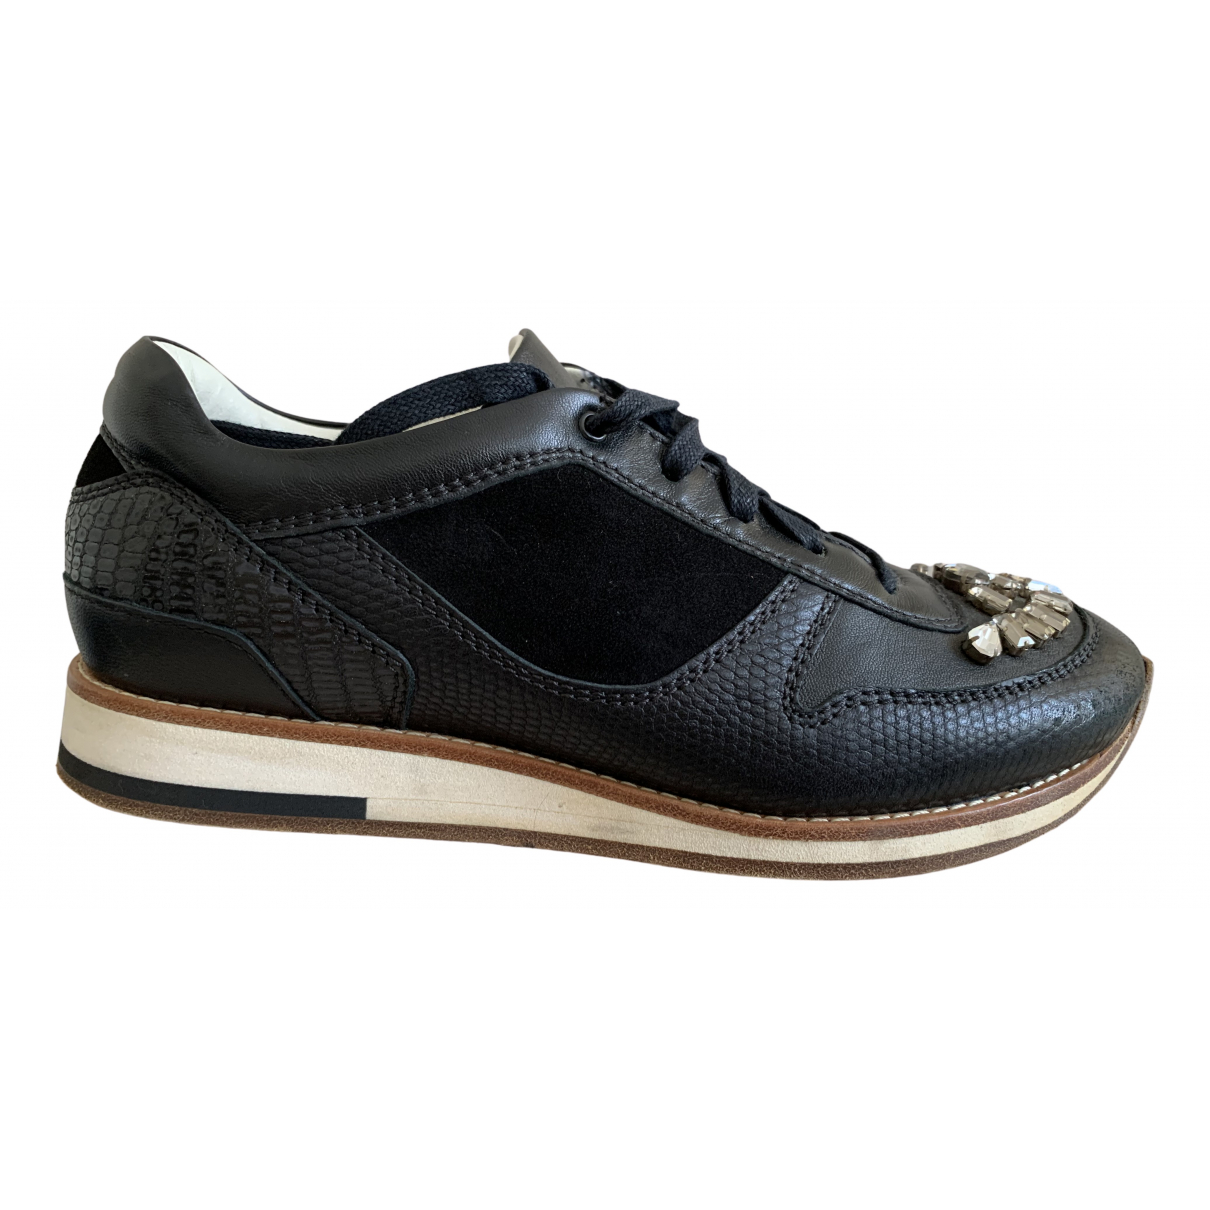 Lanvin N Black Leather Trainers for Women 39 EU